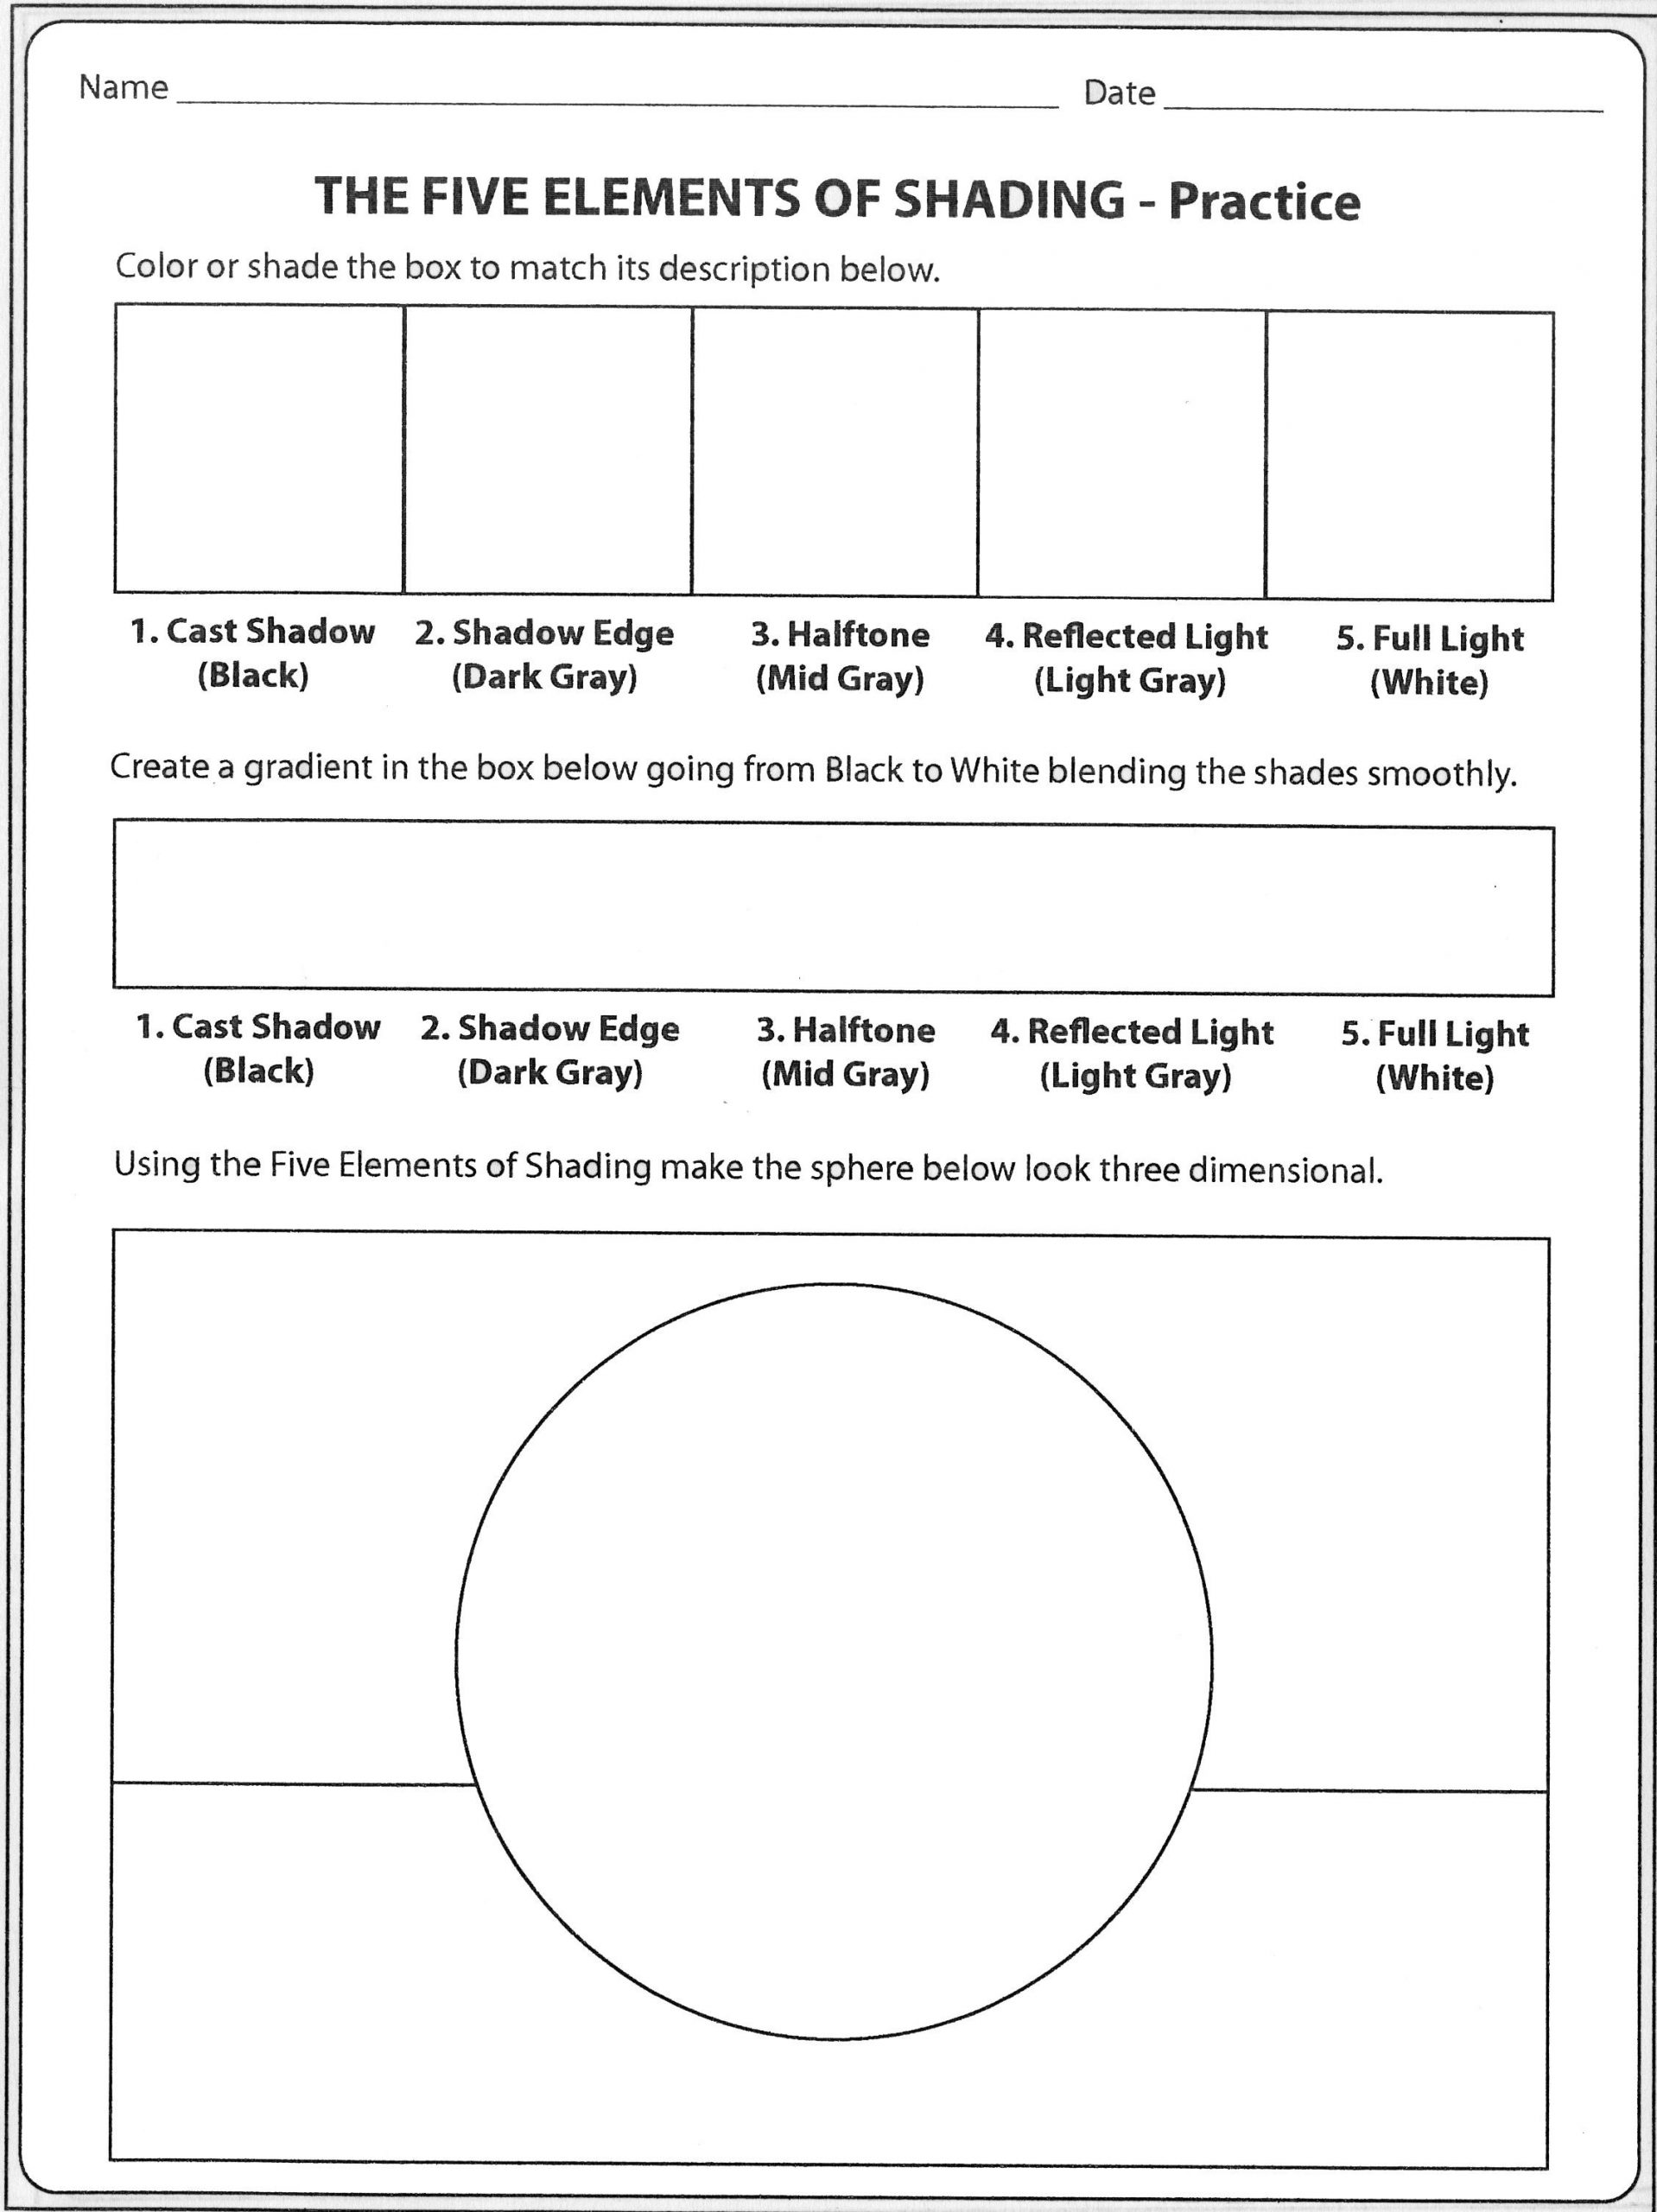 Art Worksheets Middle School formshading Practicesheet Pt1 2256—3011